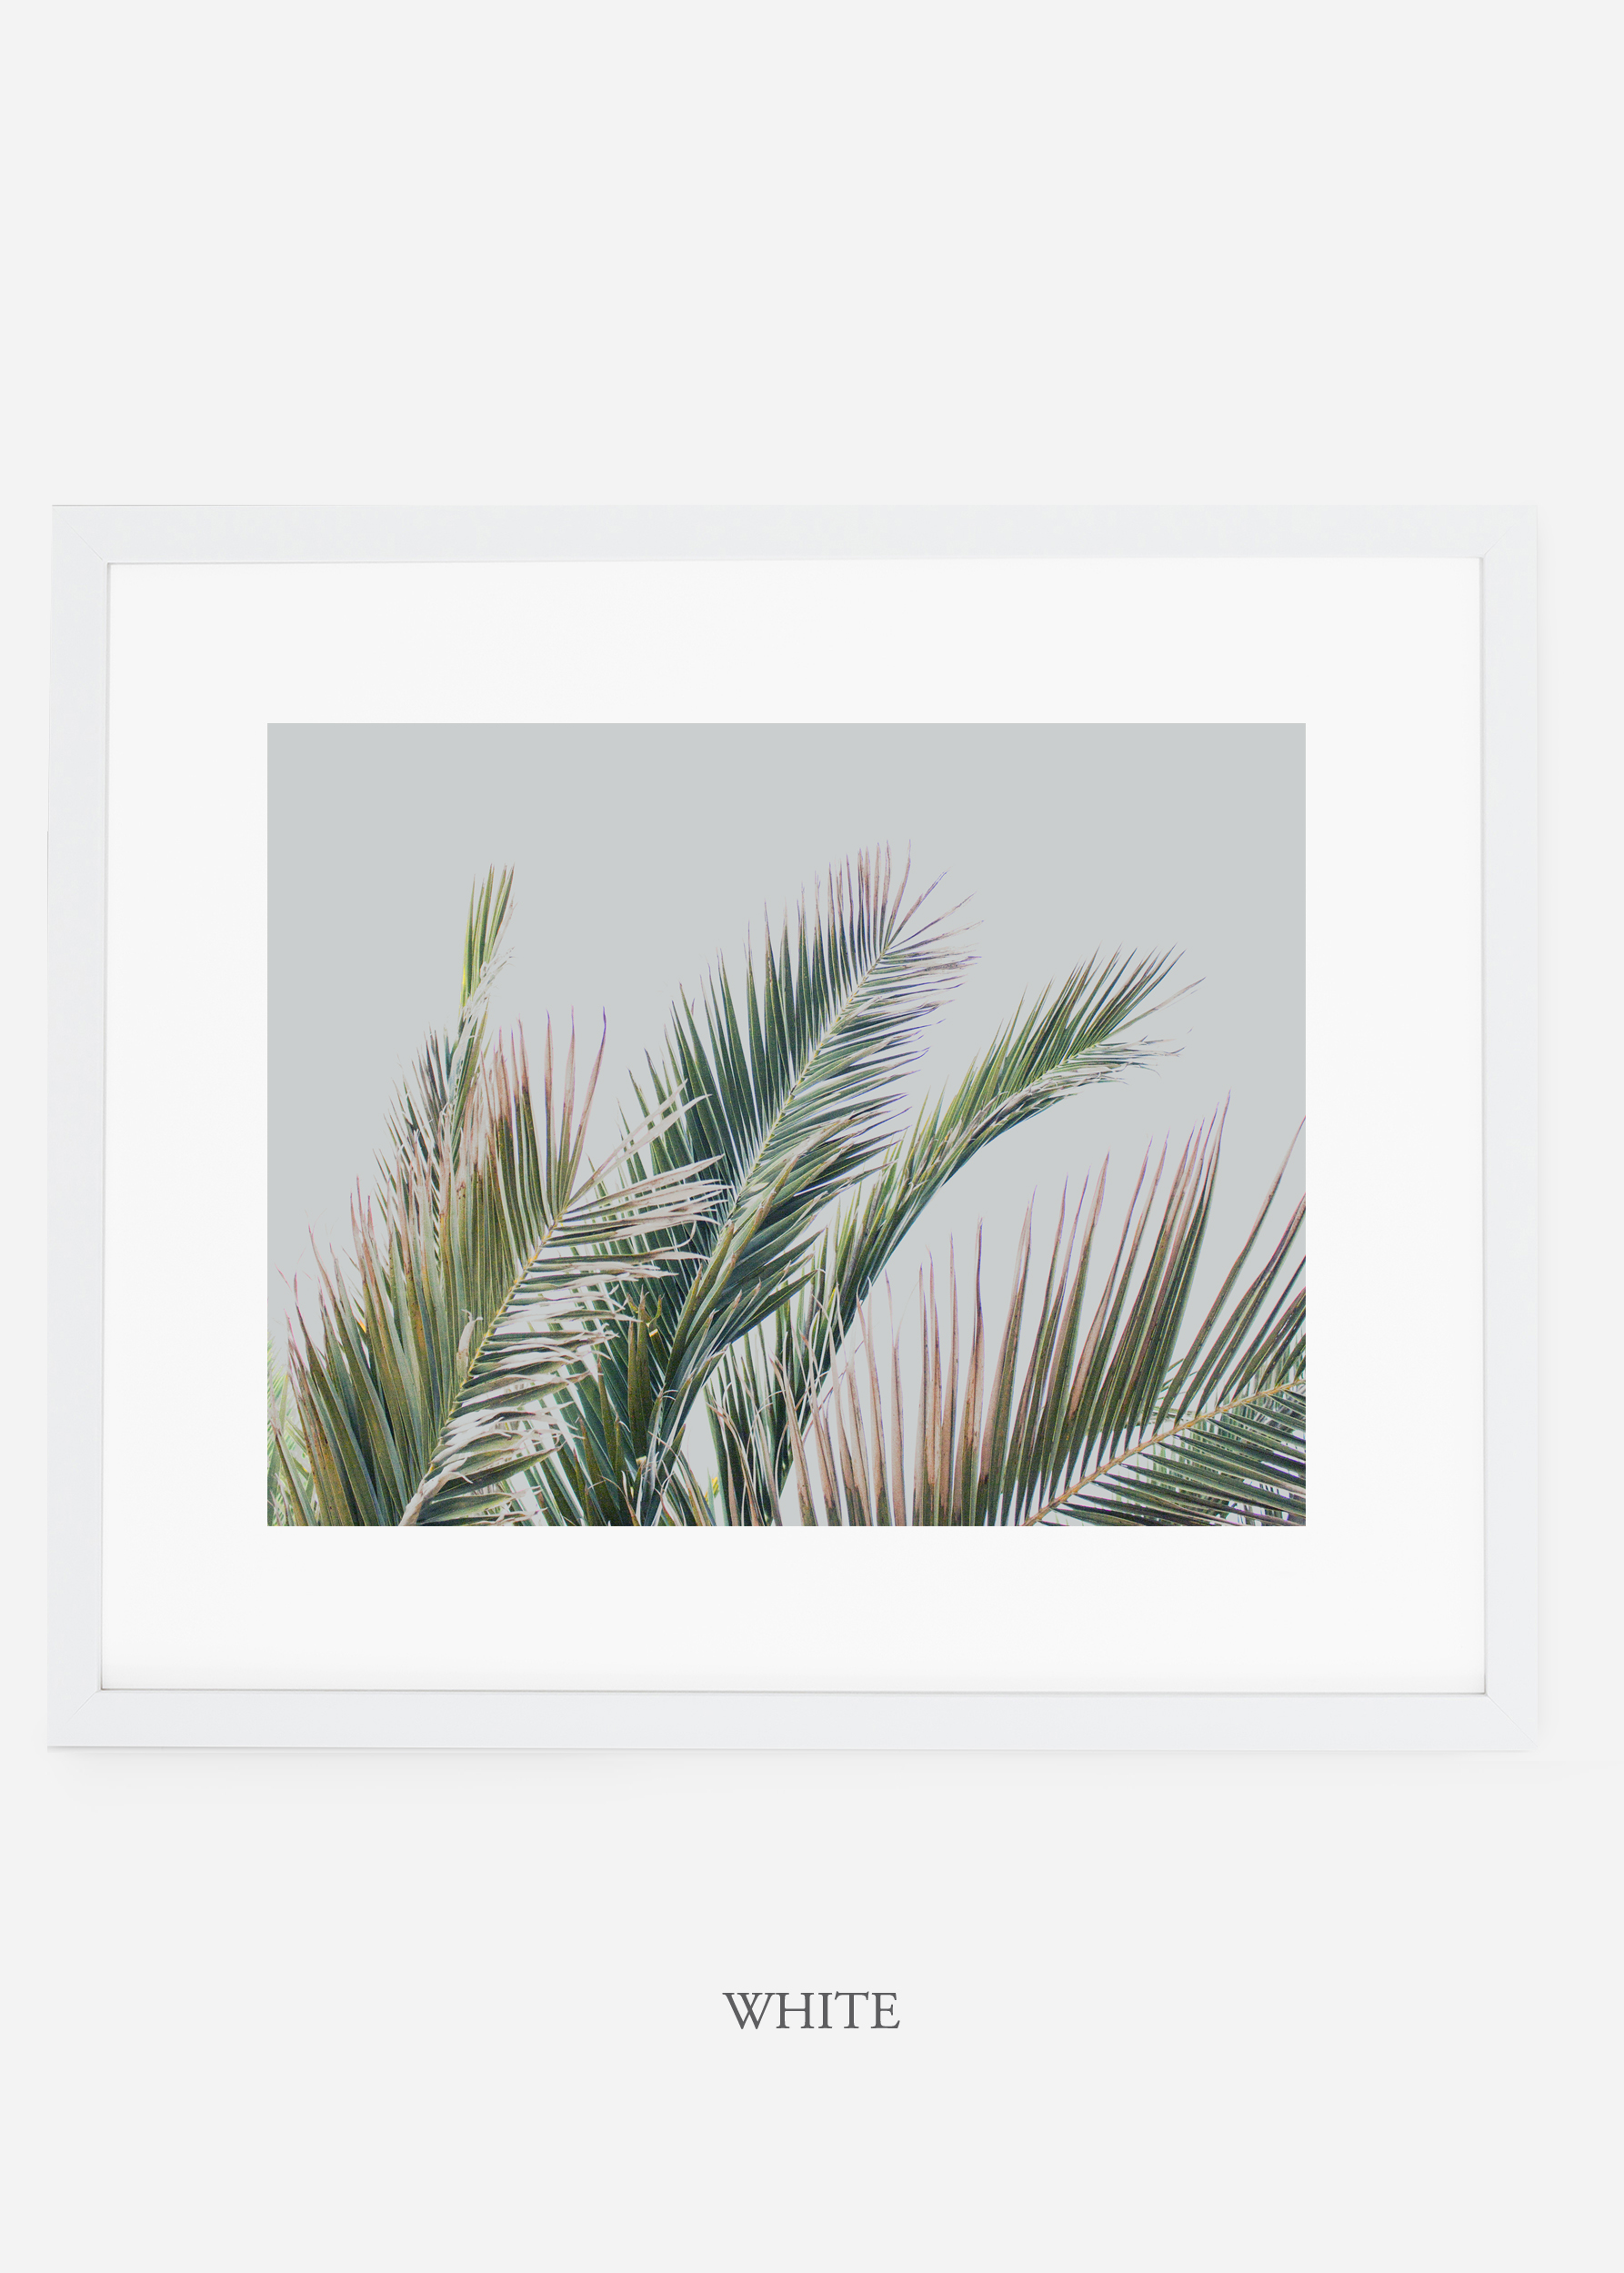 interiordesign_whiteframe_art_tropical_palmtree_StormyGrayPalm.jpg